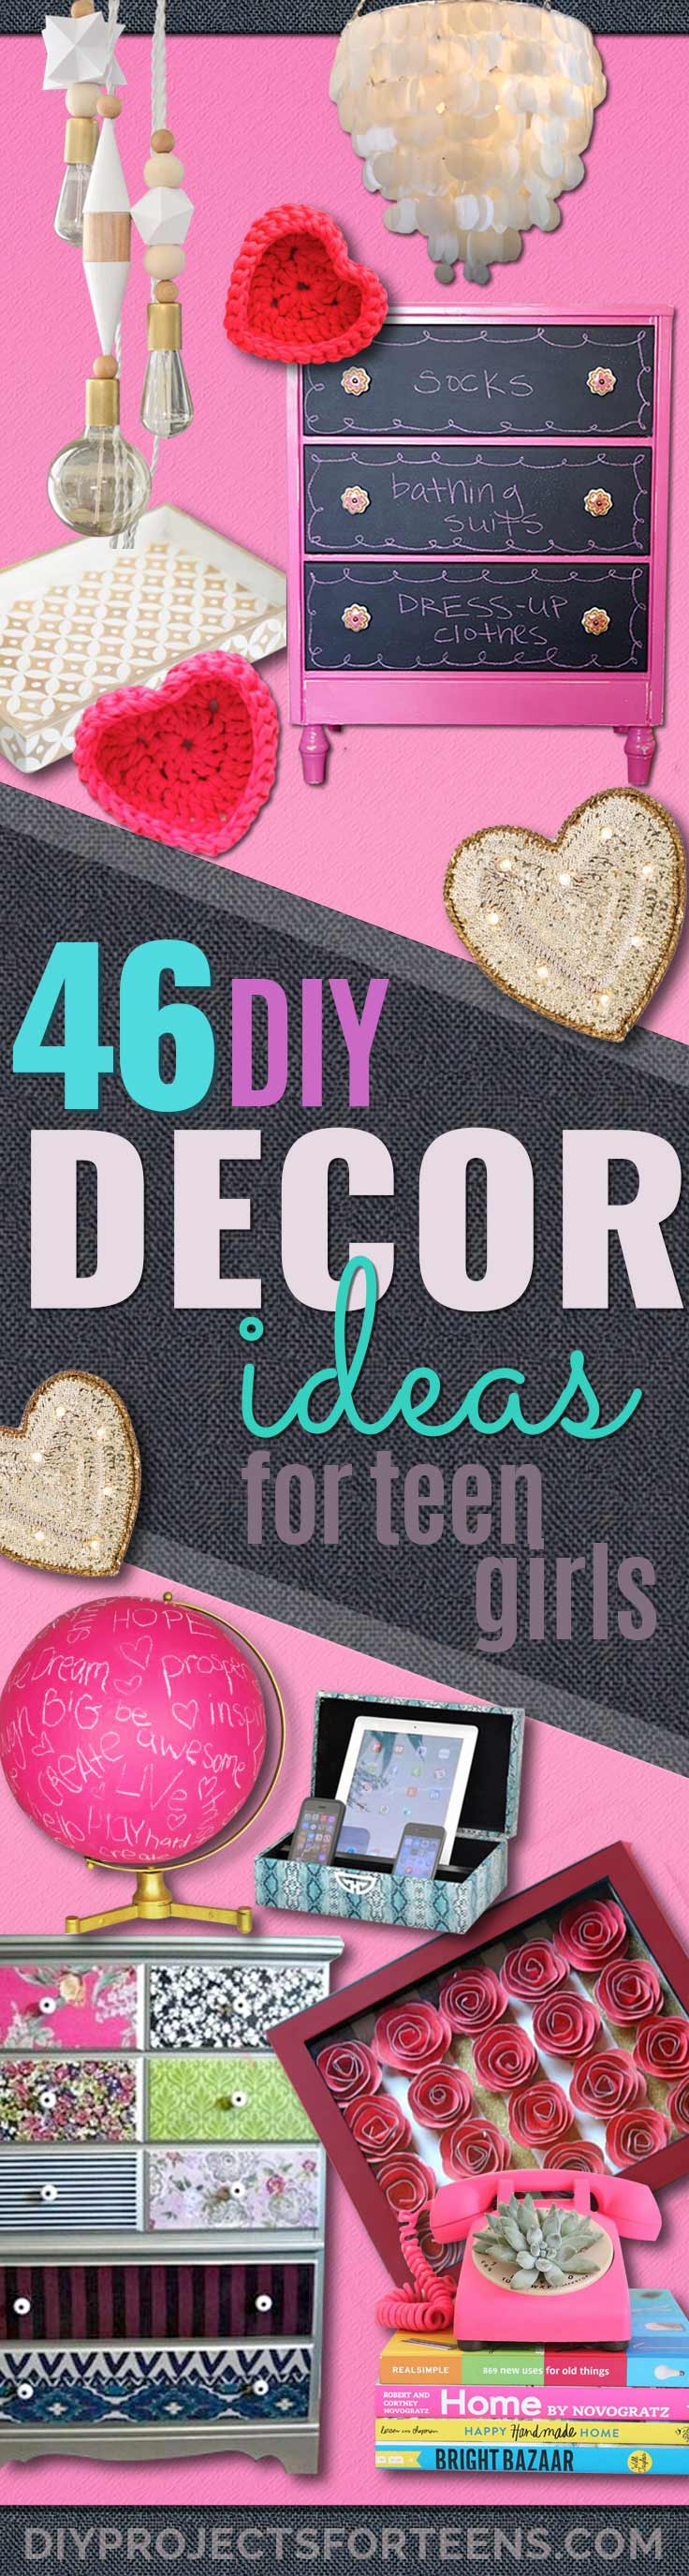 Cool bedroom wall designs for girls - Diy Teen Room Decor Ideas For Girls Fun Crafts And Decor For Tweens Cool